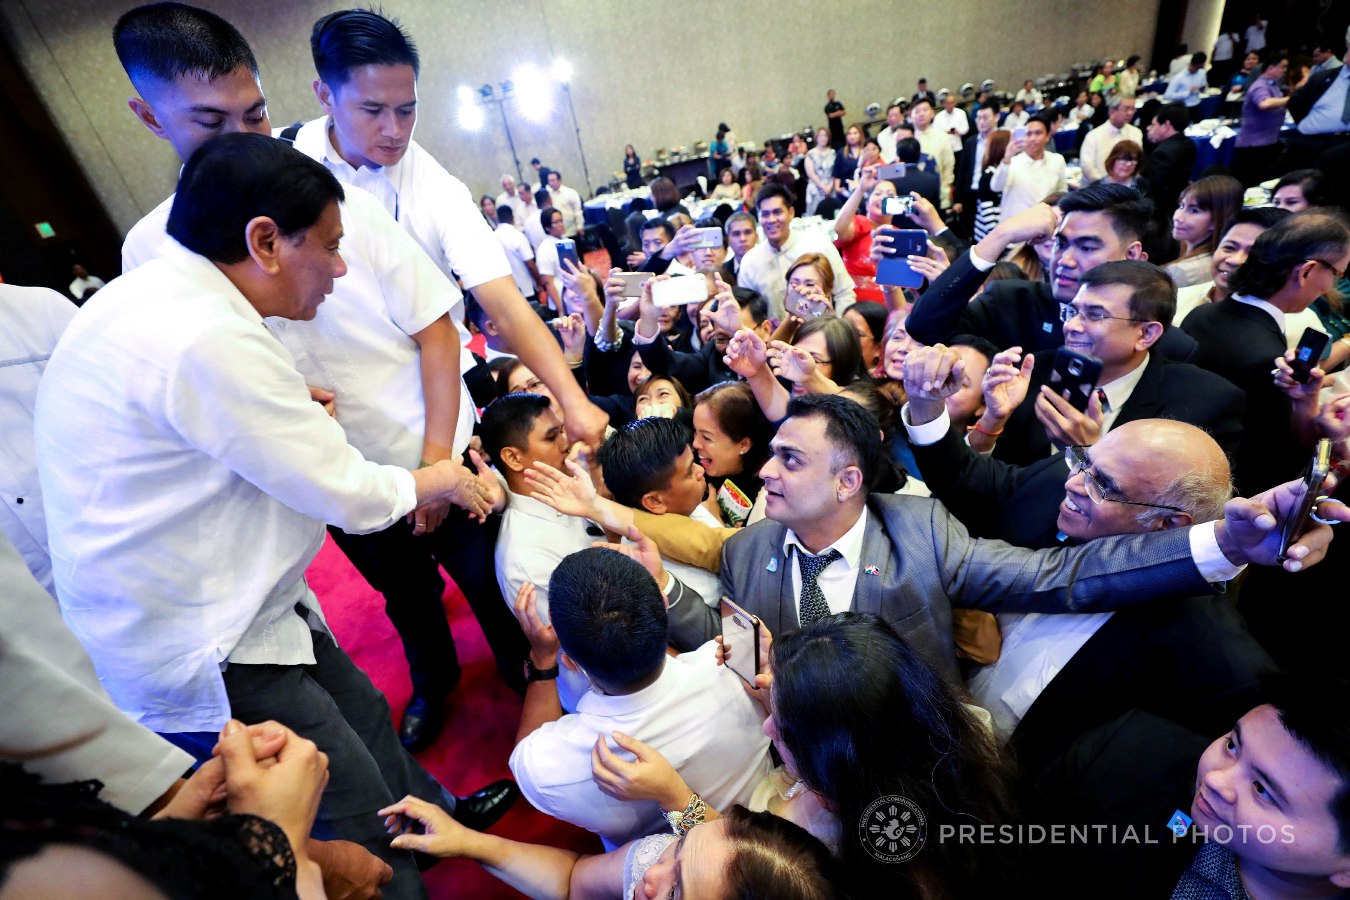 President Rodrigo Roa Duterte interacts with the guests during the 7th anniversary of the public service show, 'Buhay OFW', at the Sofitel Philippine Plaza in Pasay City on October 18, 2017. RICHARD MADELO/PRESIDENTIAL PHOTO